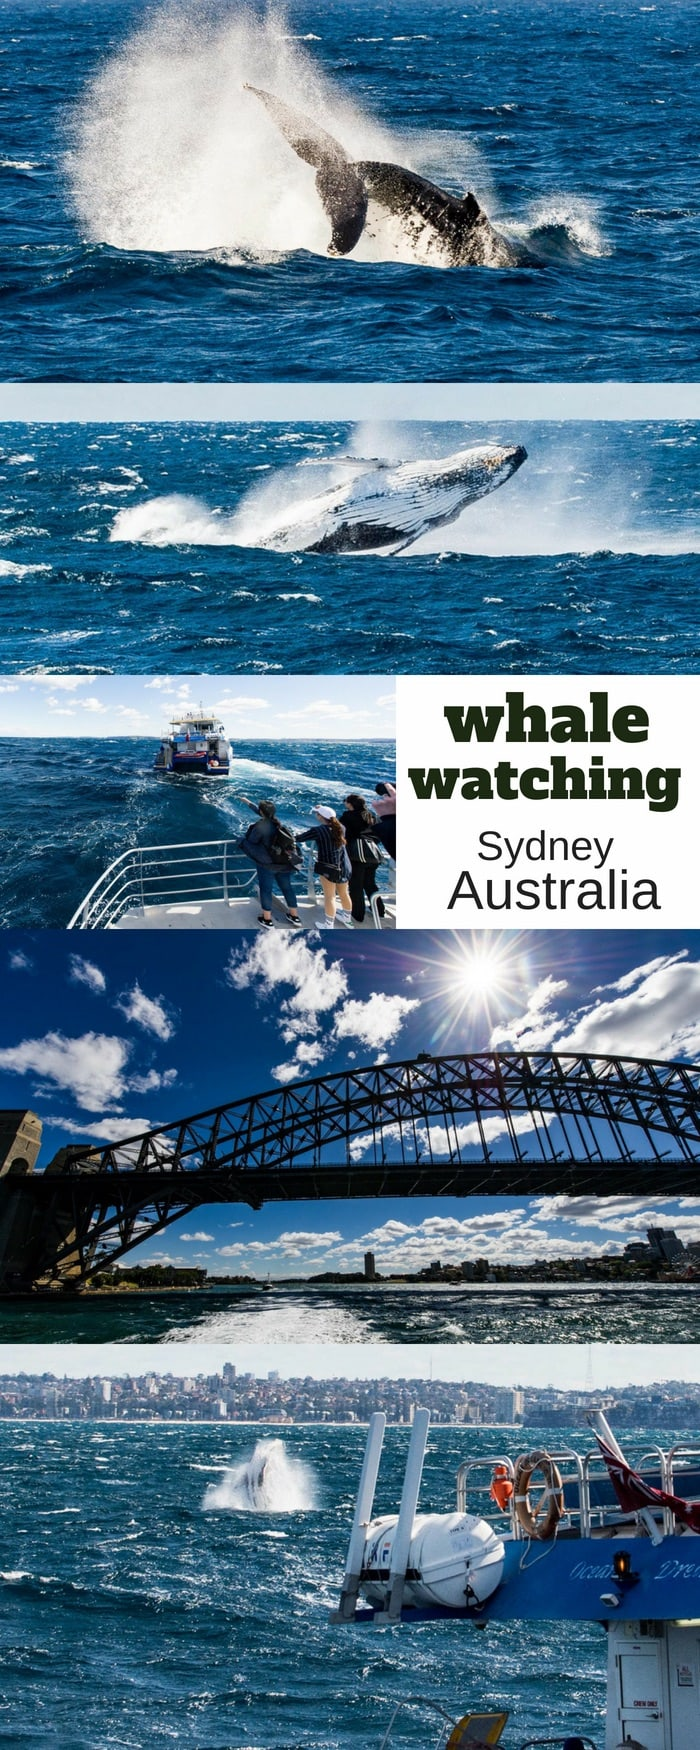 Whale Watching Sydney with travel tips to help you have the best possible adventure. Don't miss this amazing exerperience in the land down under! #whalewatching #whalewatchingsydney #sydneywhalewatching #australiawhales #sydney #australia #sydneyadventure